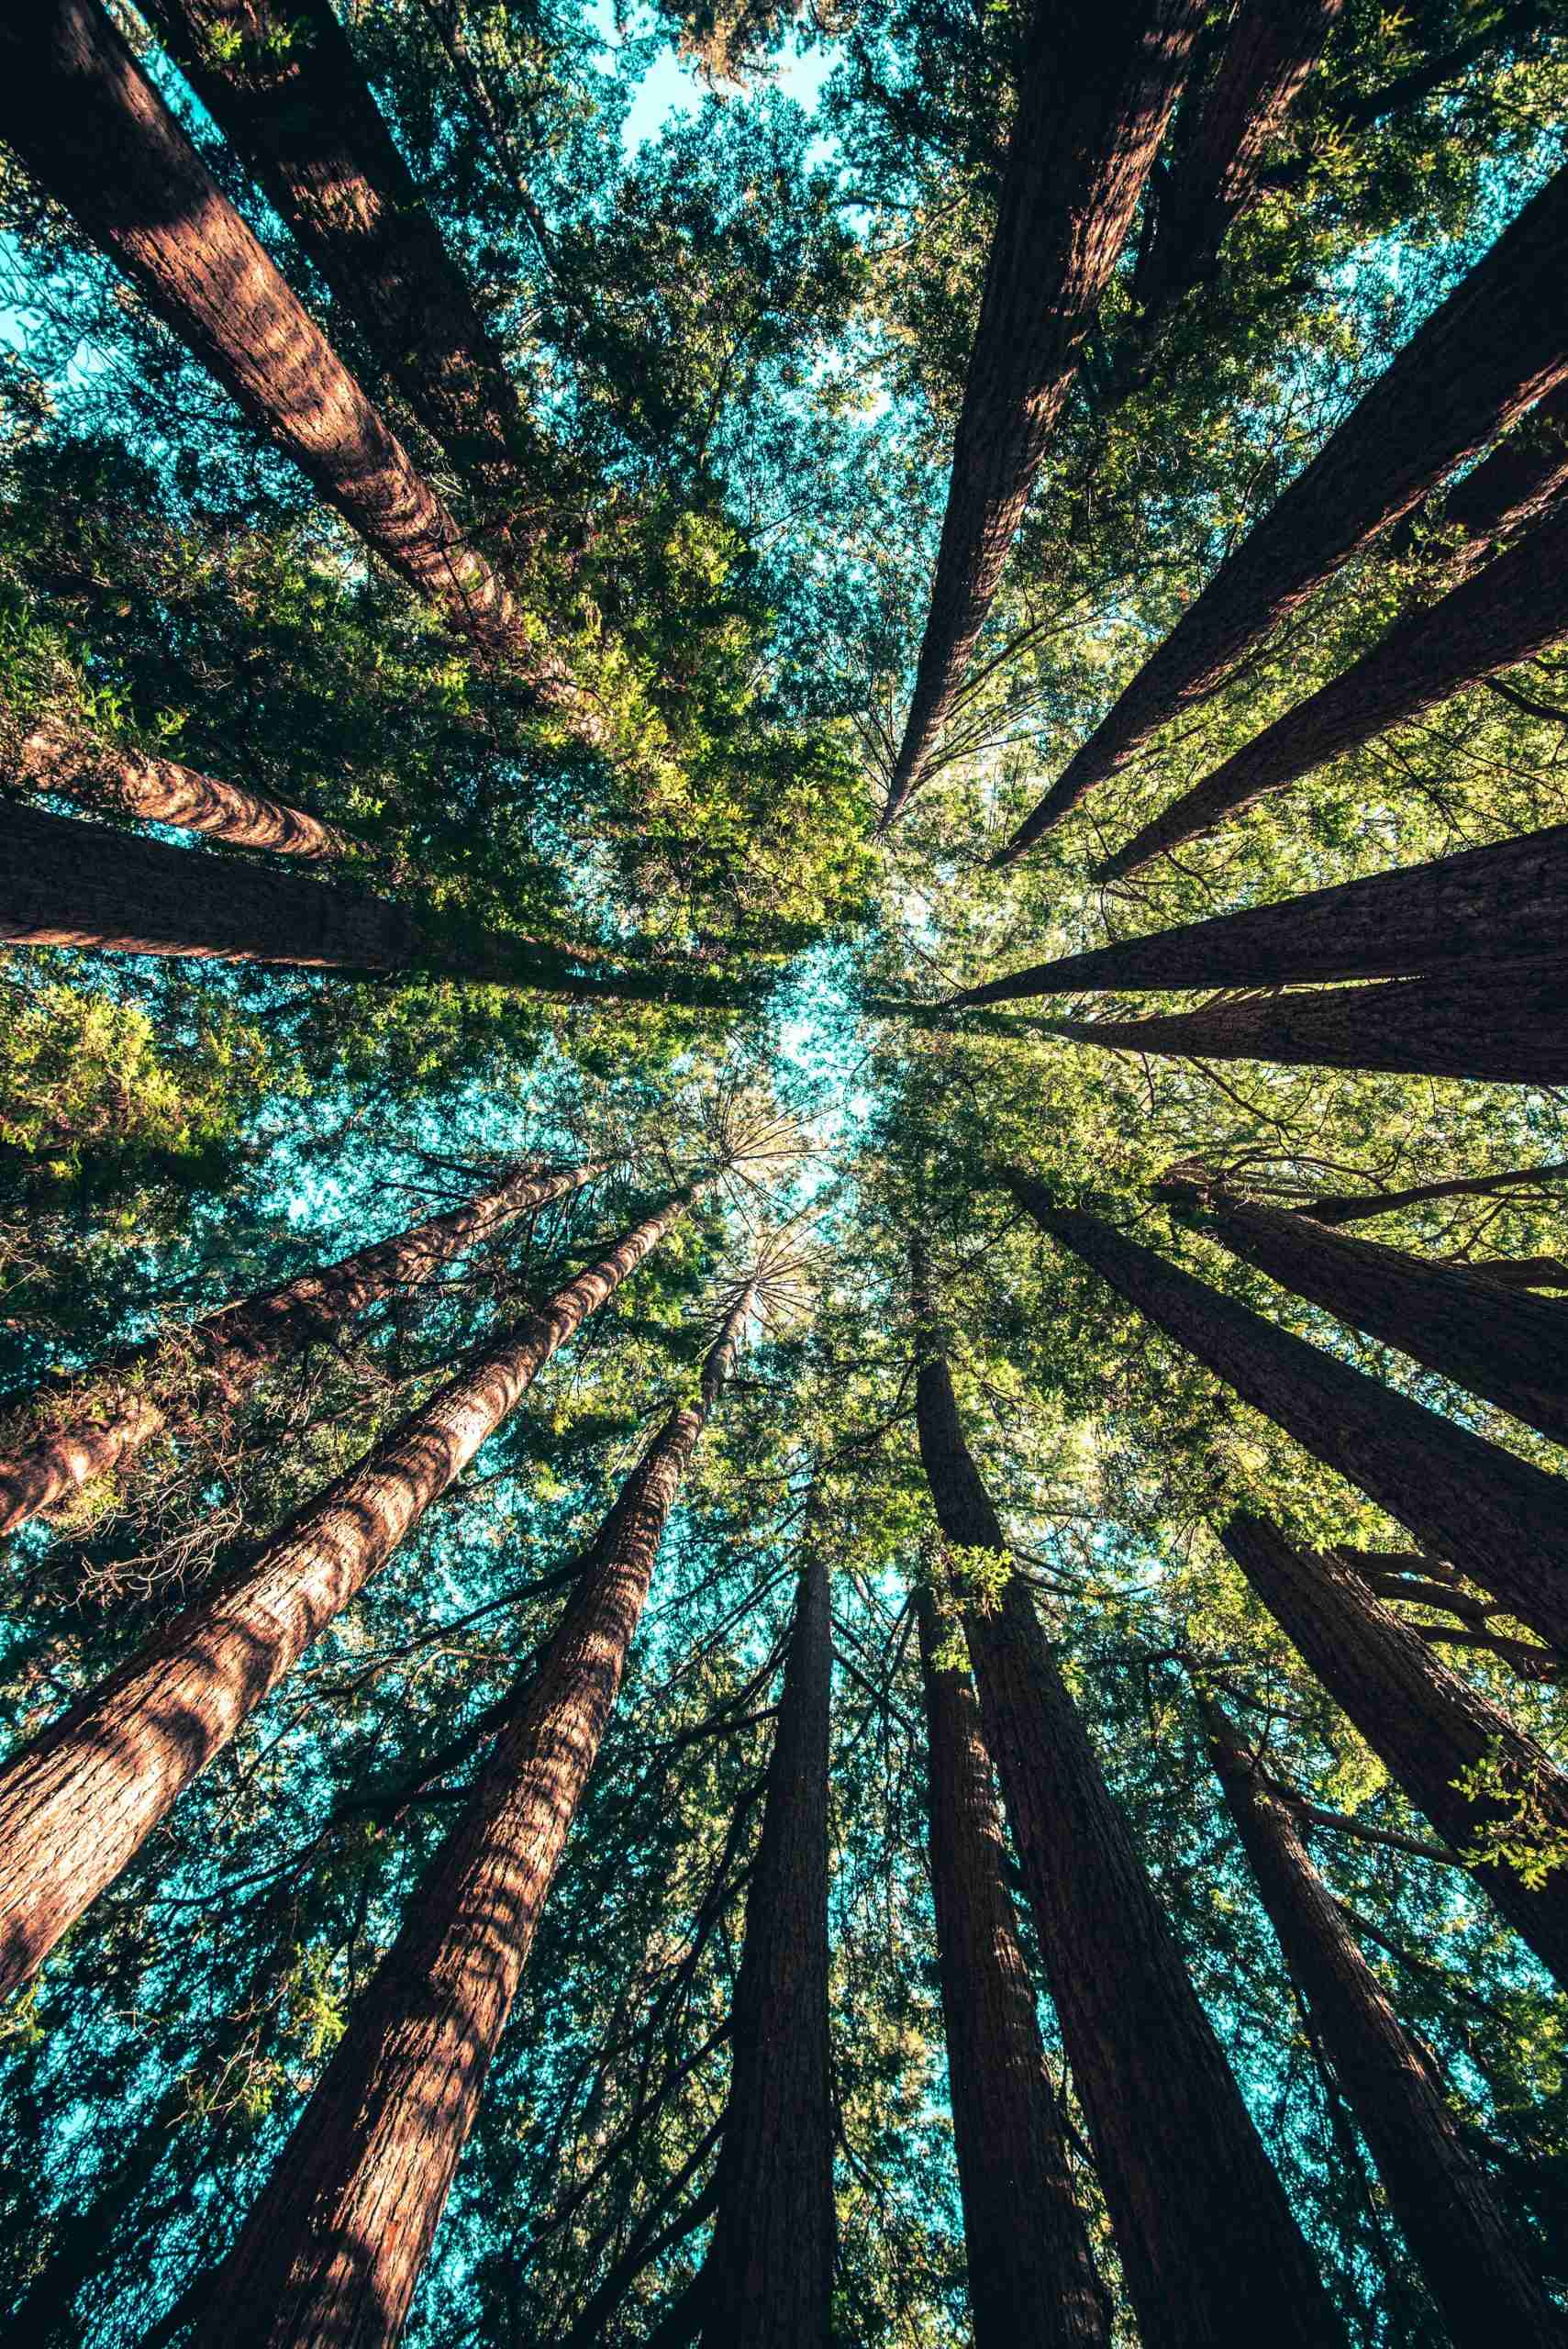 Trees looking straight up